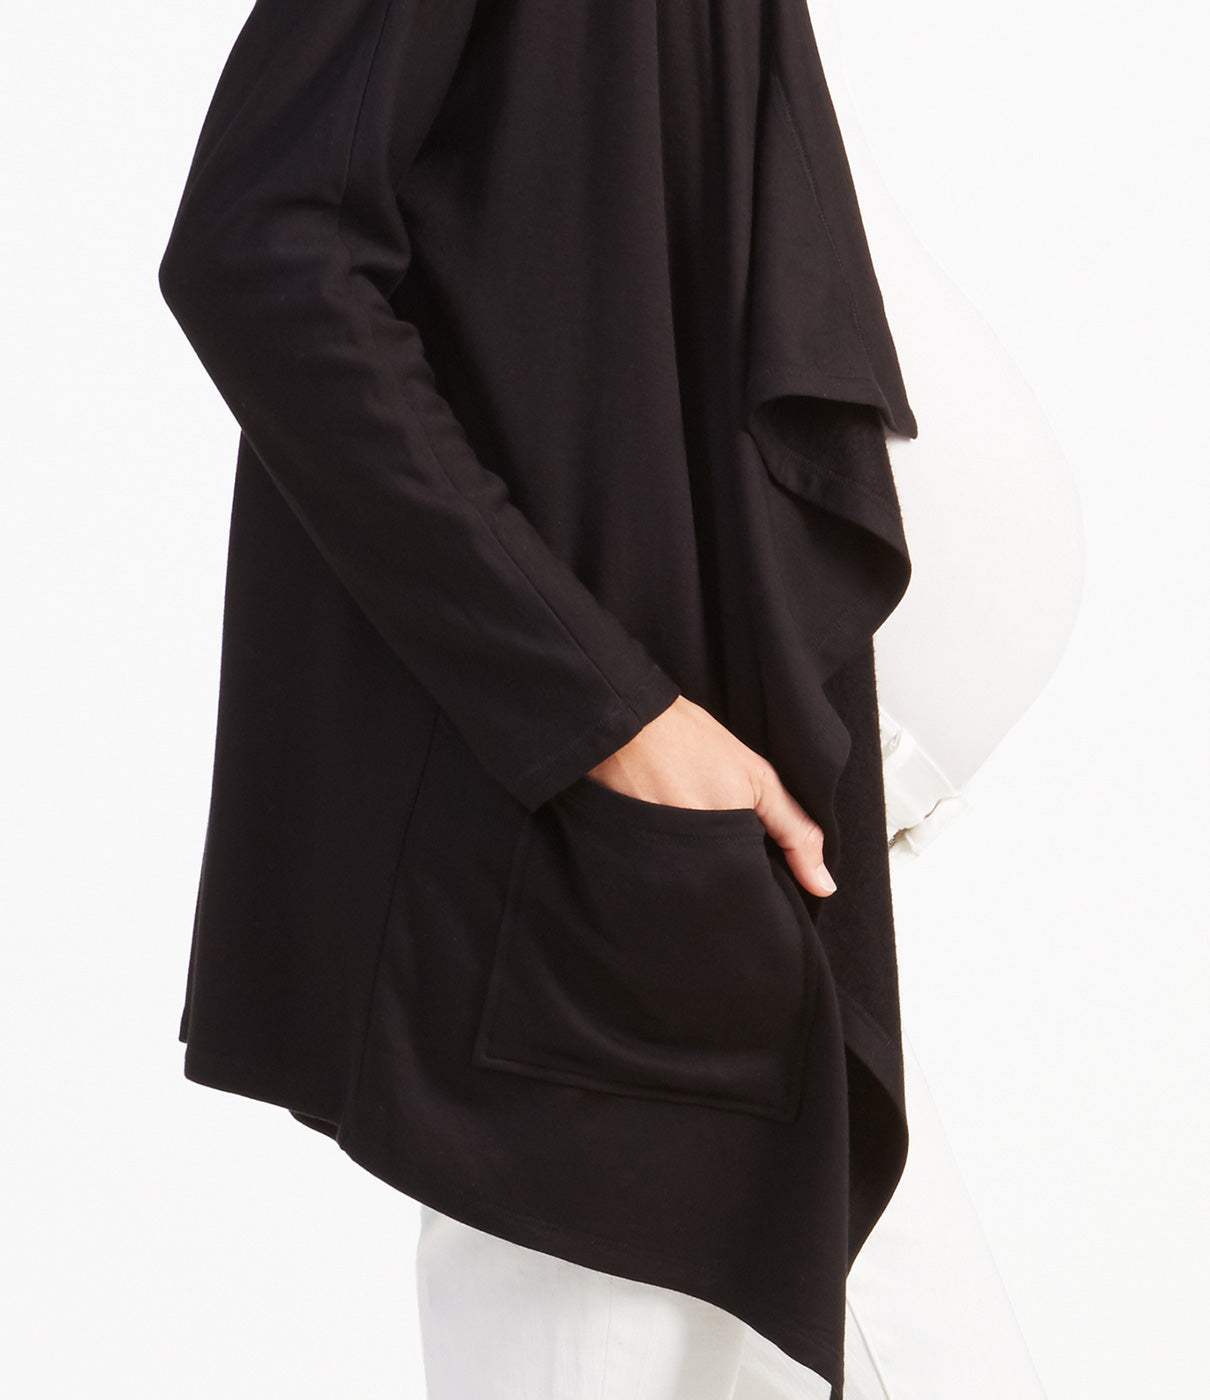 FASHION + FUNCTIONFlattering dolman sleeves for added arm coverage and handy front pockets.